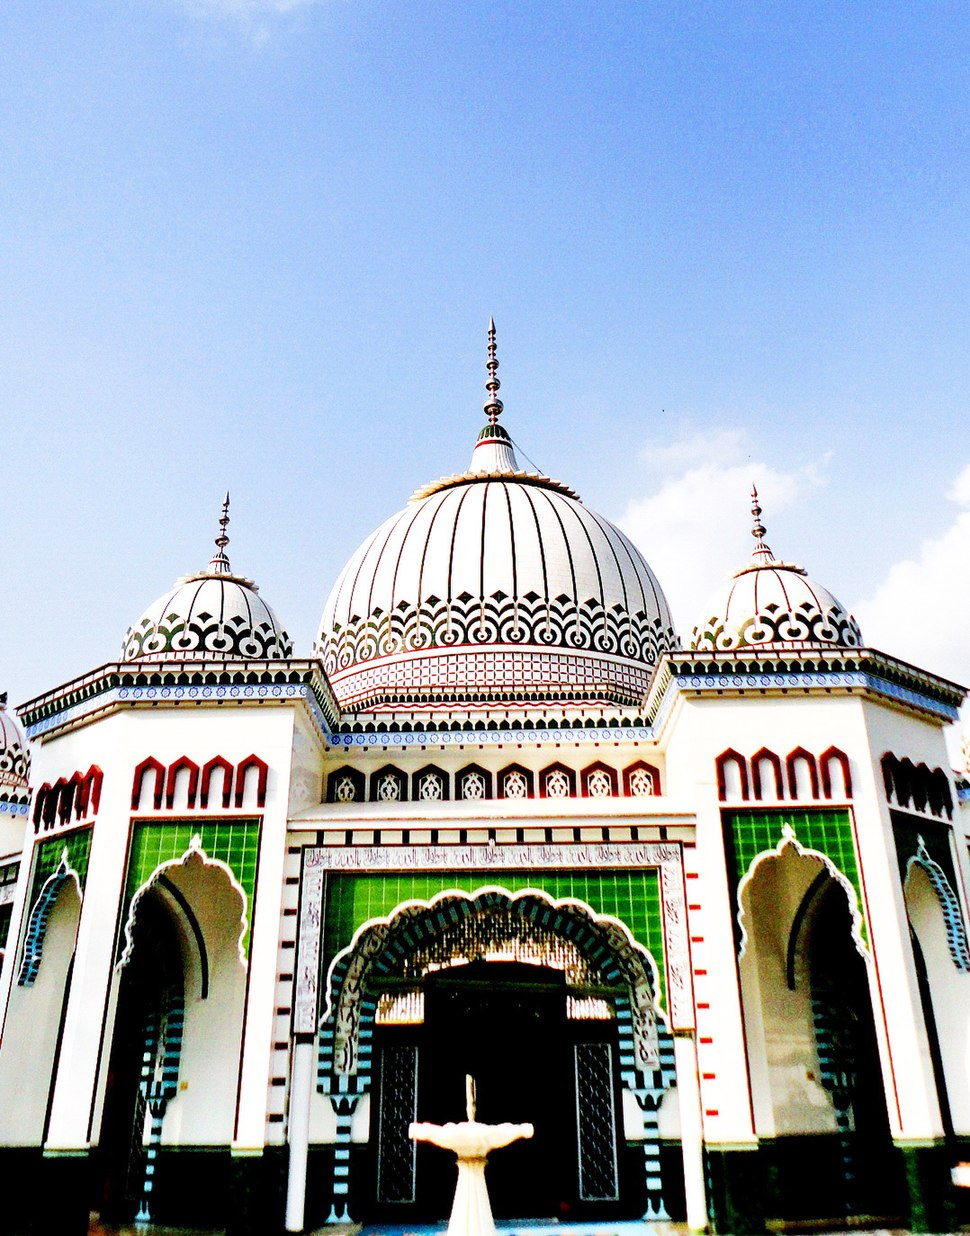 Eid gah shrine